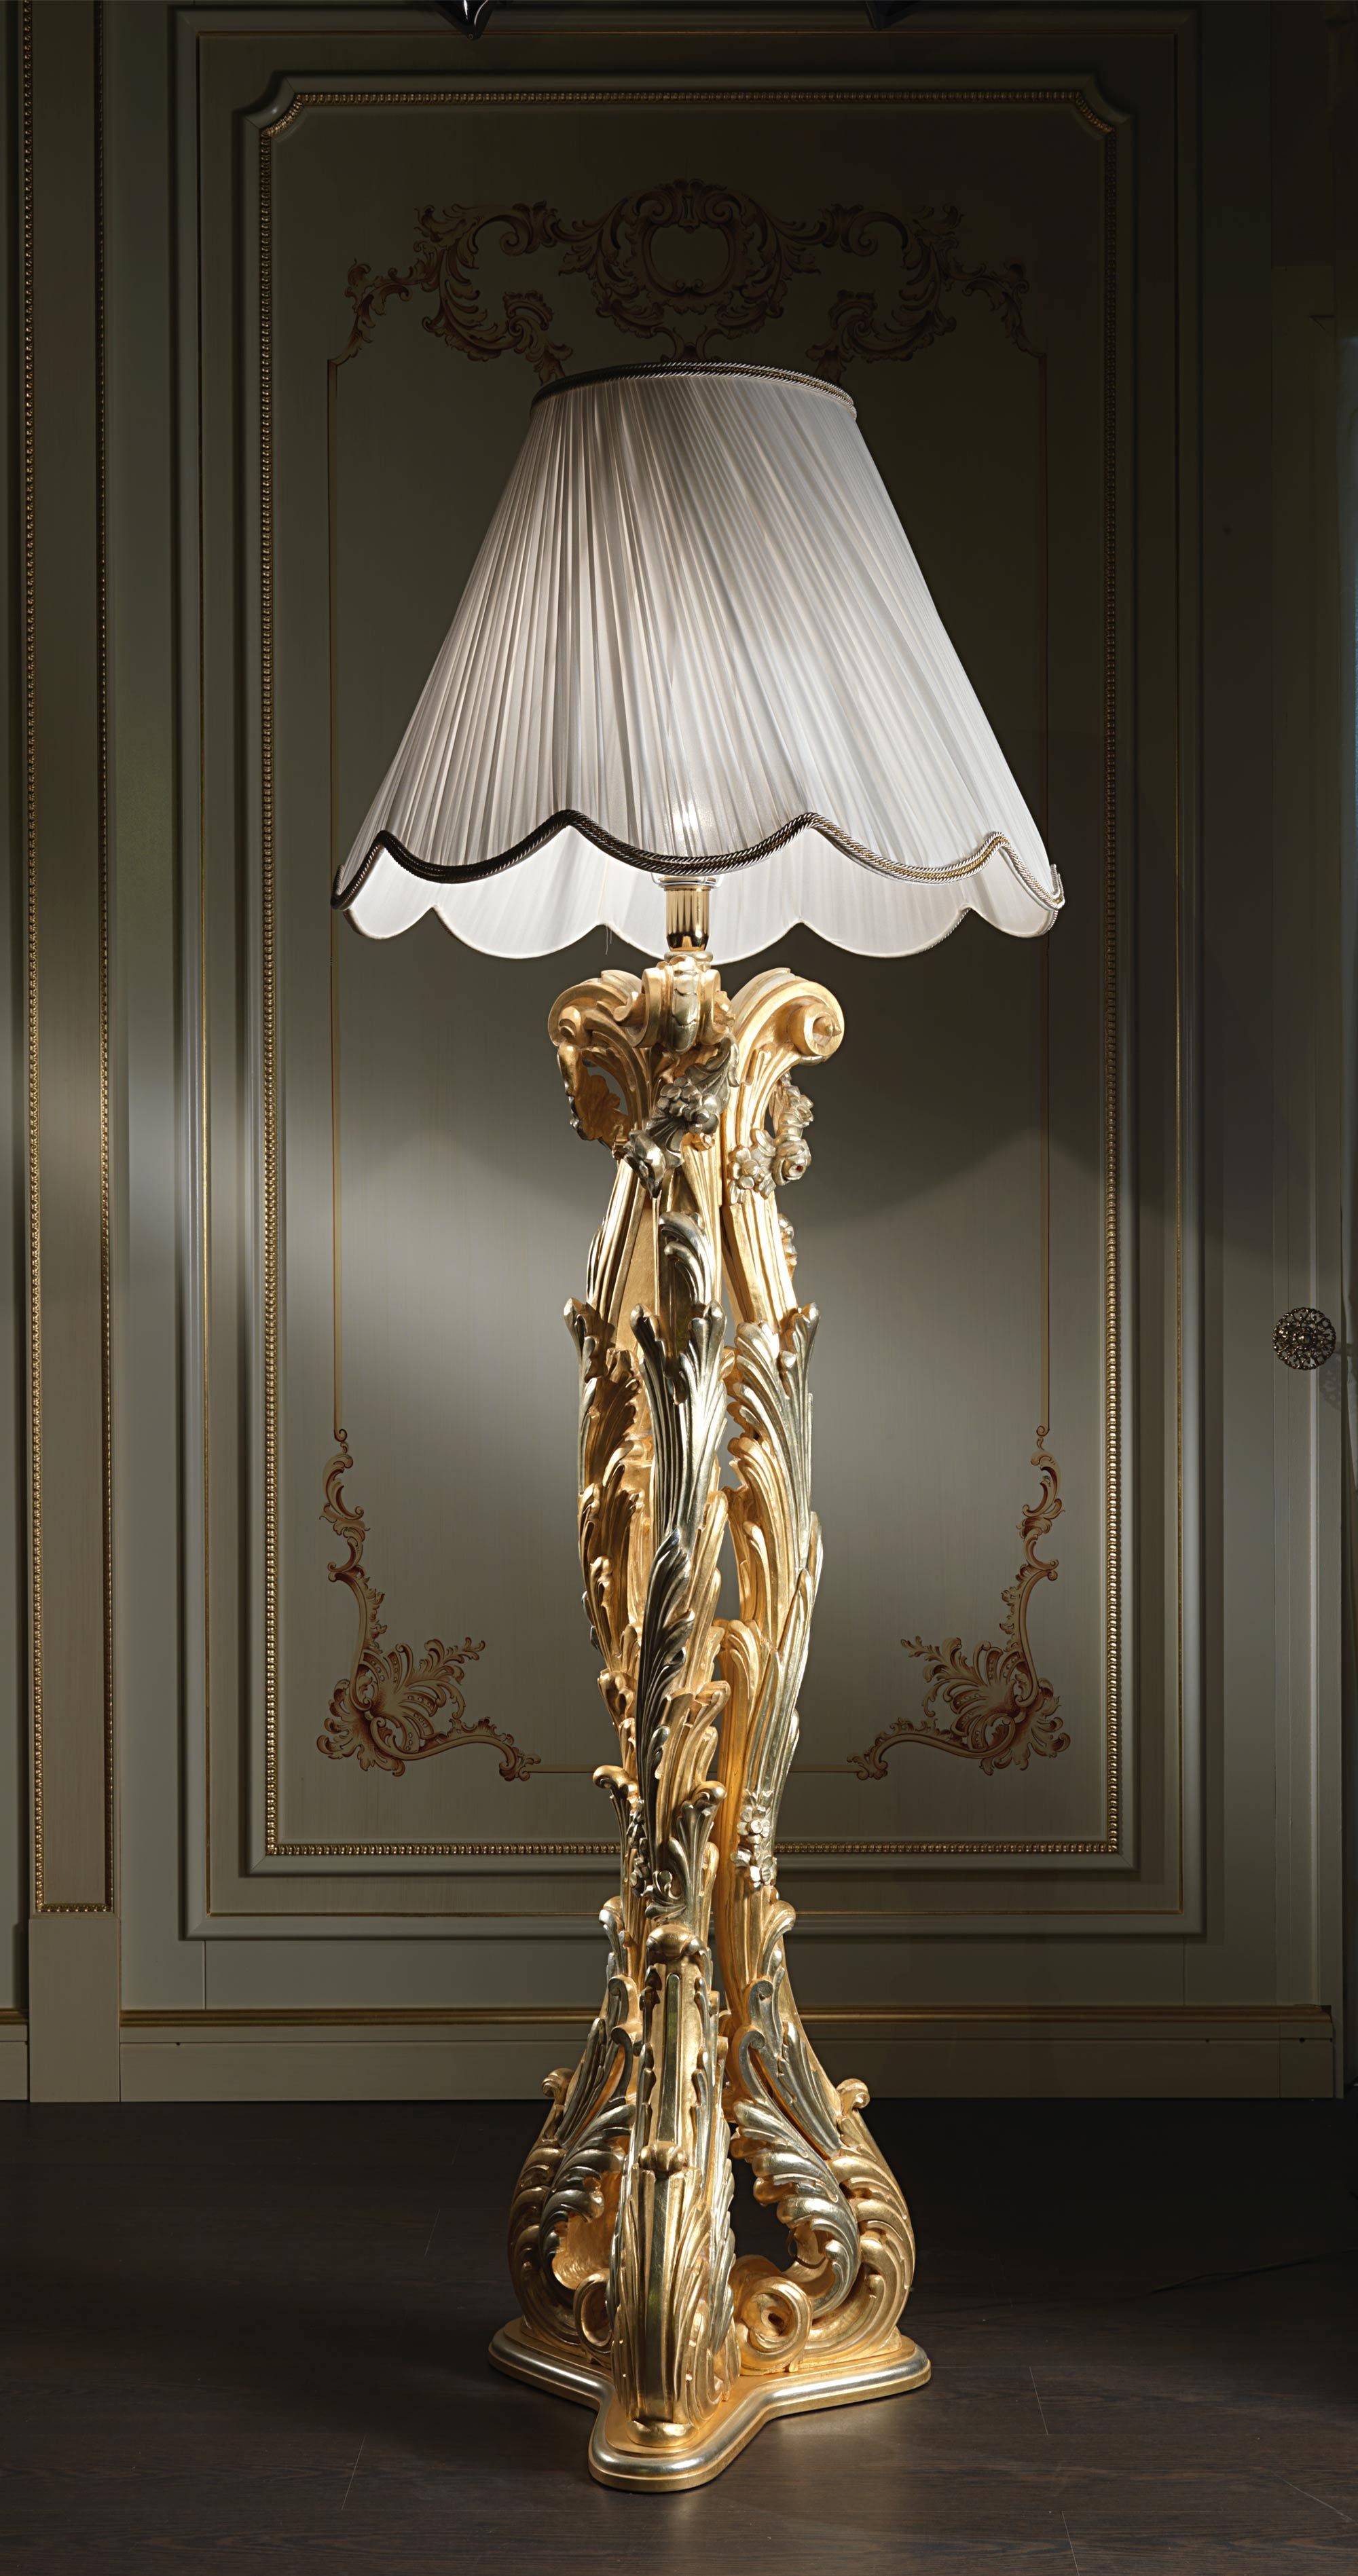 Luxury Floor Lamp In Baroque Style Classic Floor Lamps Baroque Floor Lamp Classic Furniture